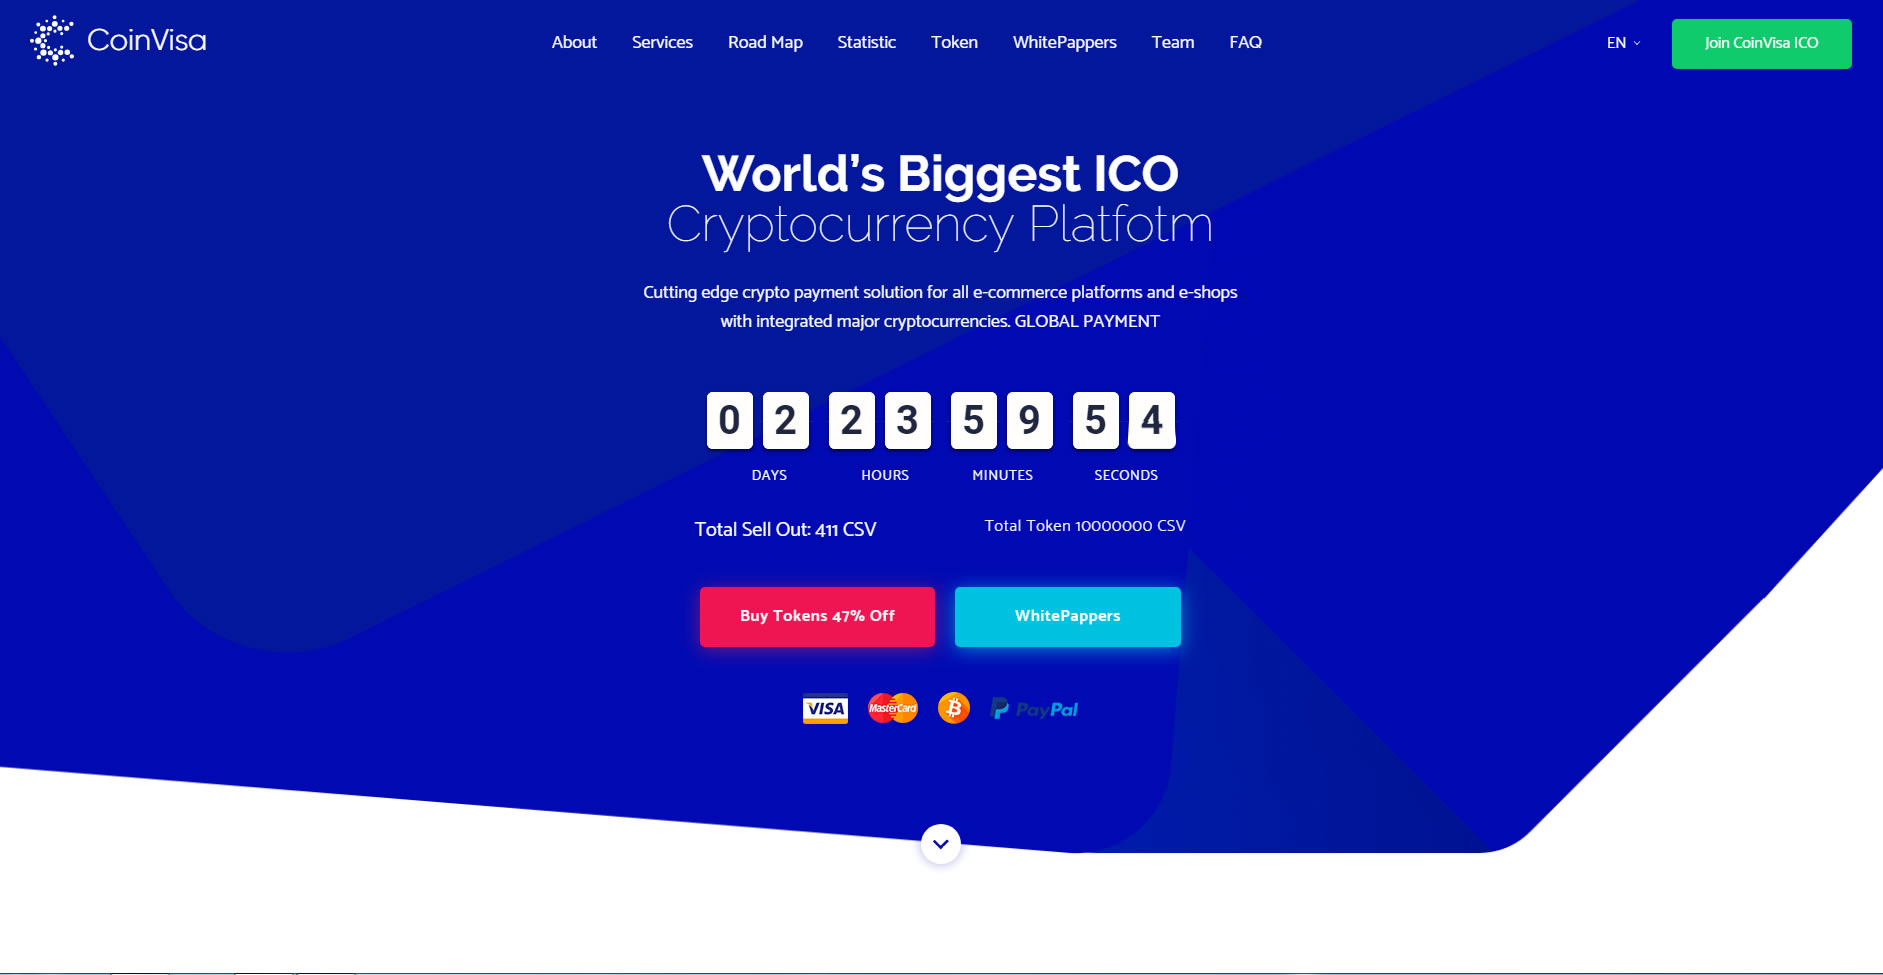 Readymade ico Script Buy token, Refer 3 level ,Wallet Setting